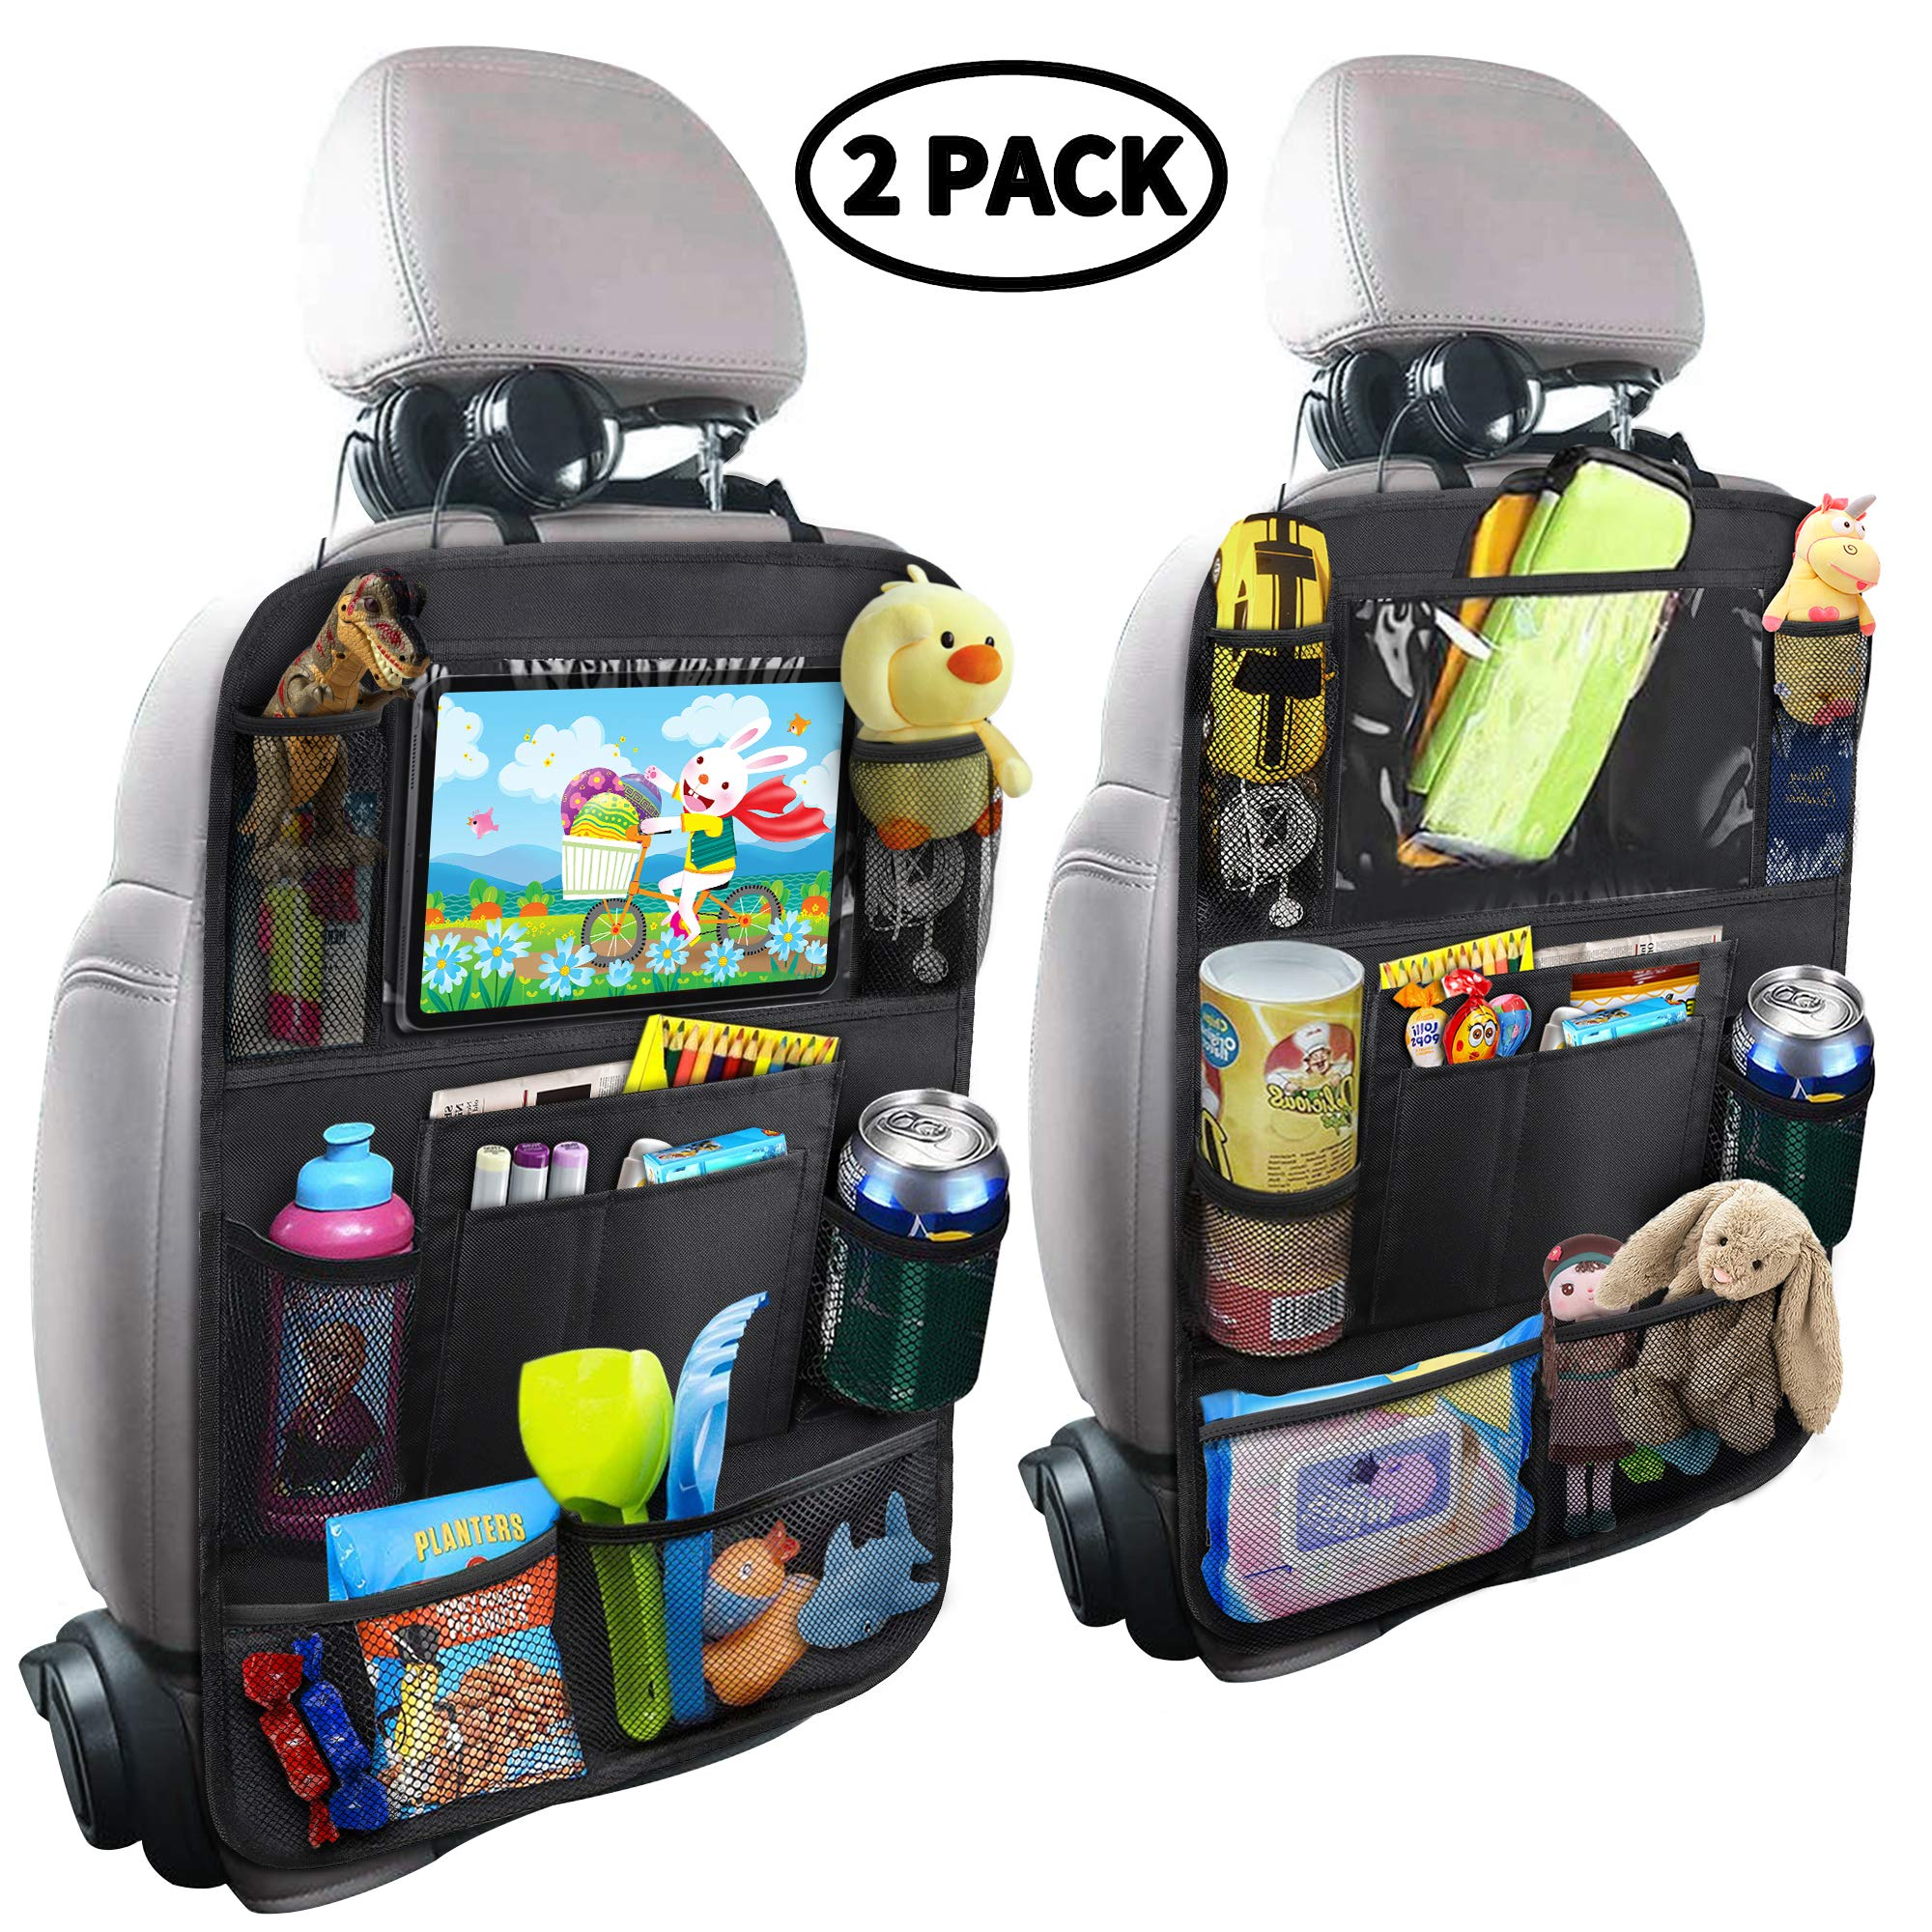 MZTDYTL Car Backseat Organizer with Touch Screen Tablet Holder + 9 Storage Pockets Kick Mats Car Seat Back Protectors Great Travel Accessories for Kids and Toddlers(2 Pack) by MZTDYTL